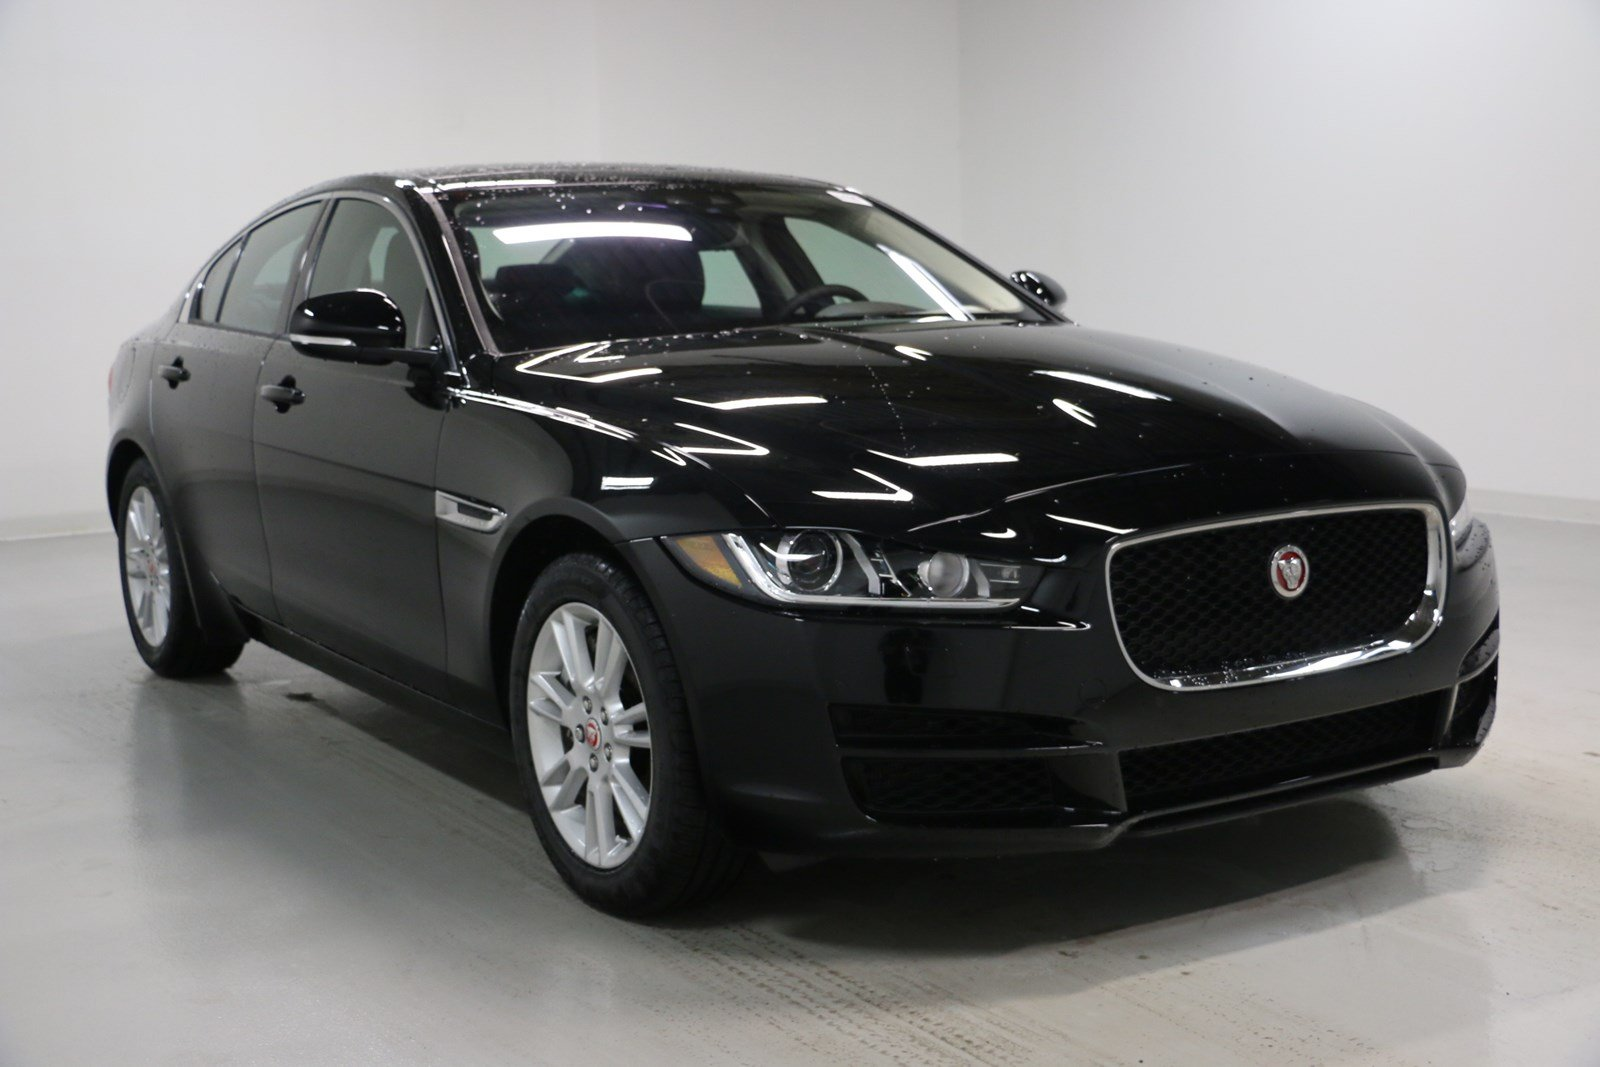 new 2018 jaguar xe 25t premium 4dr car in elmhurst j1695 jaguar elmhurst. Black Bedroom Furniture Sets. Home Design Ideas